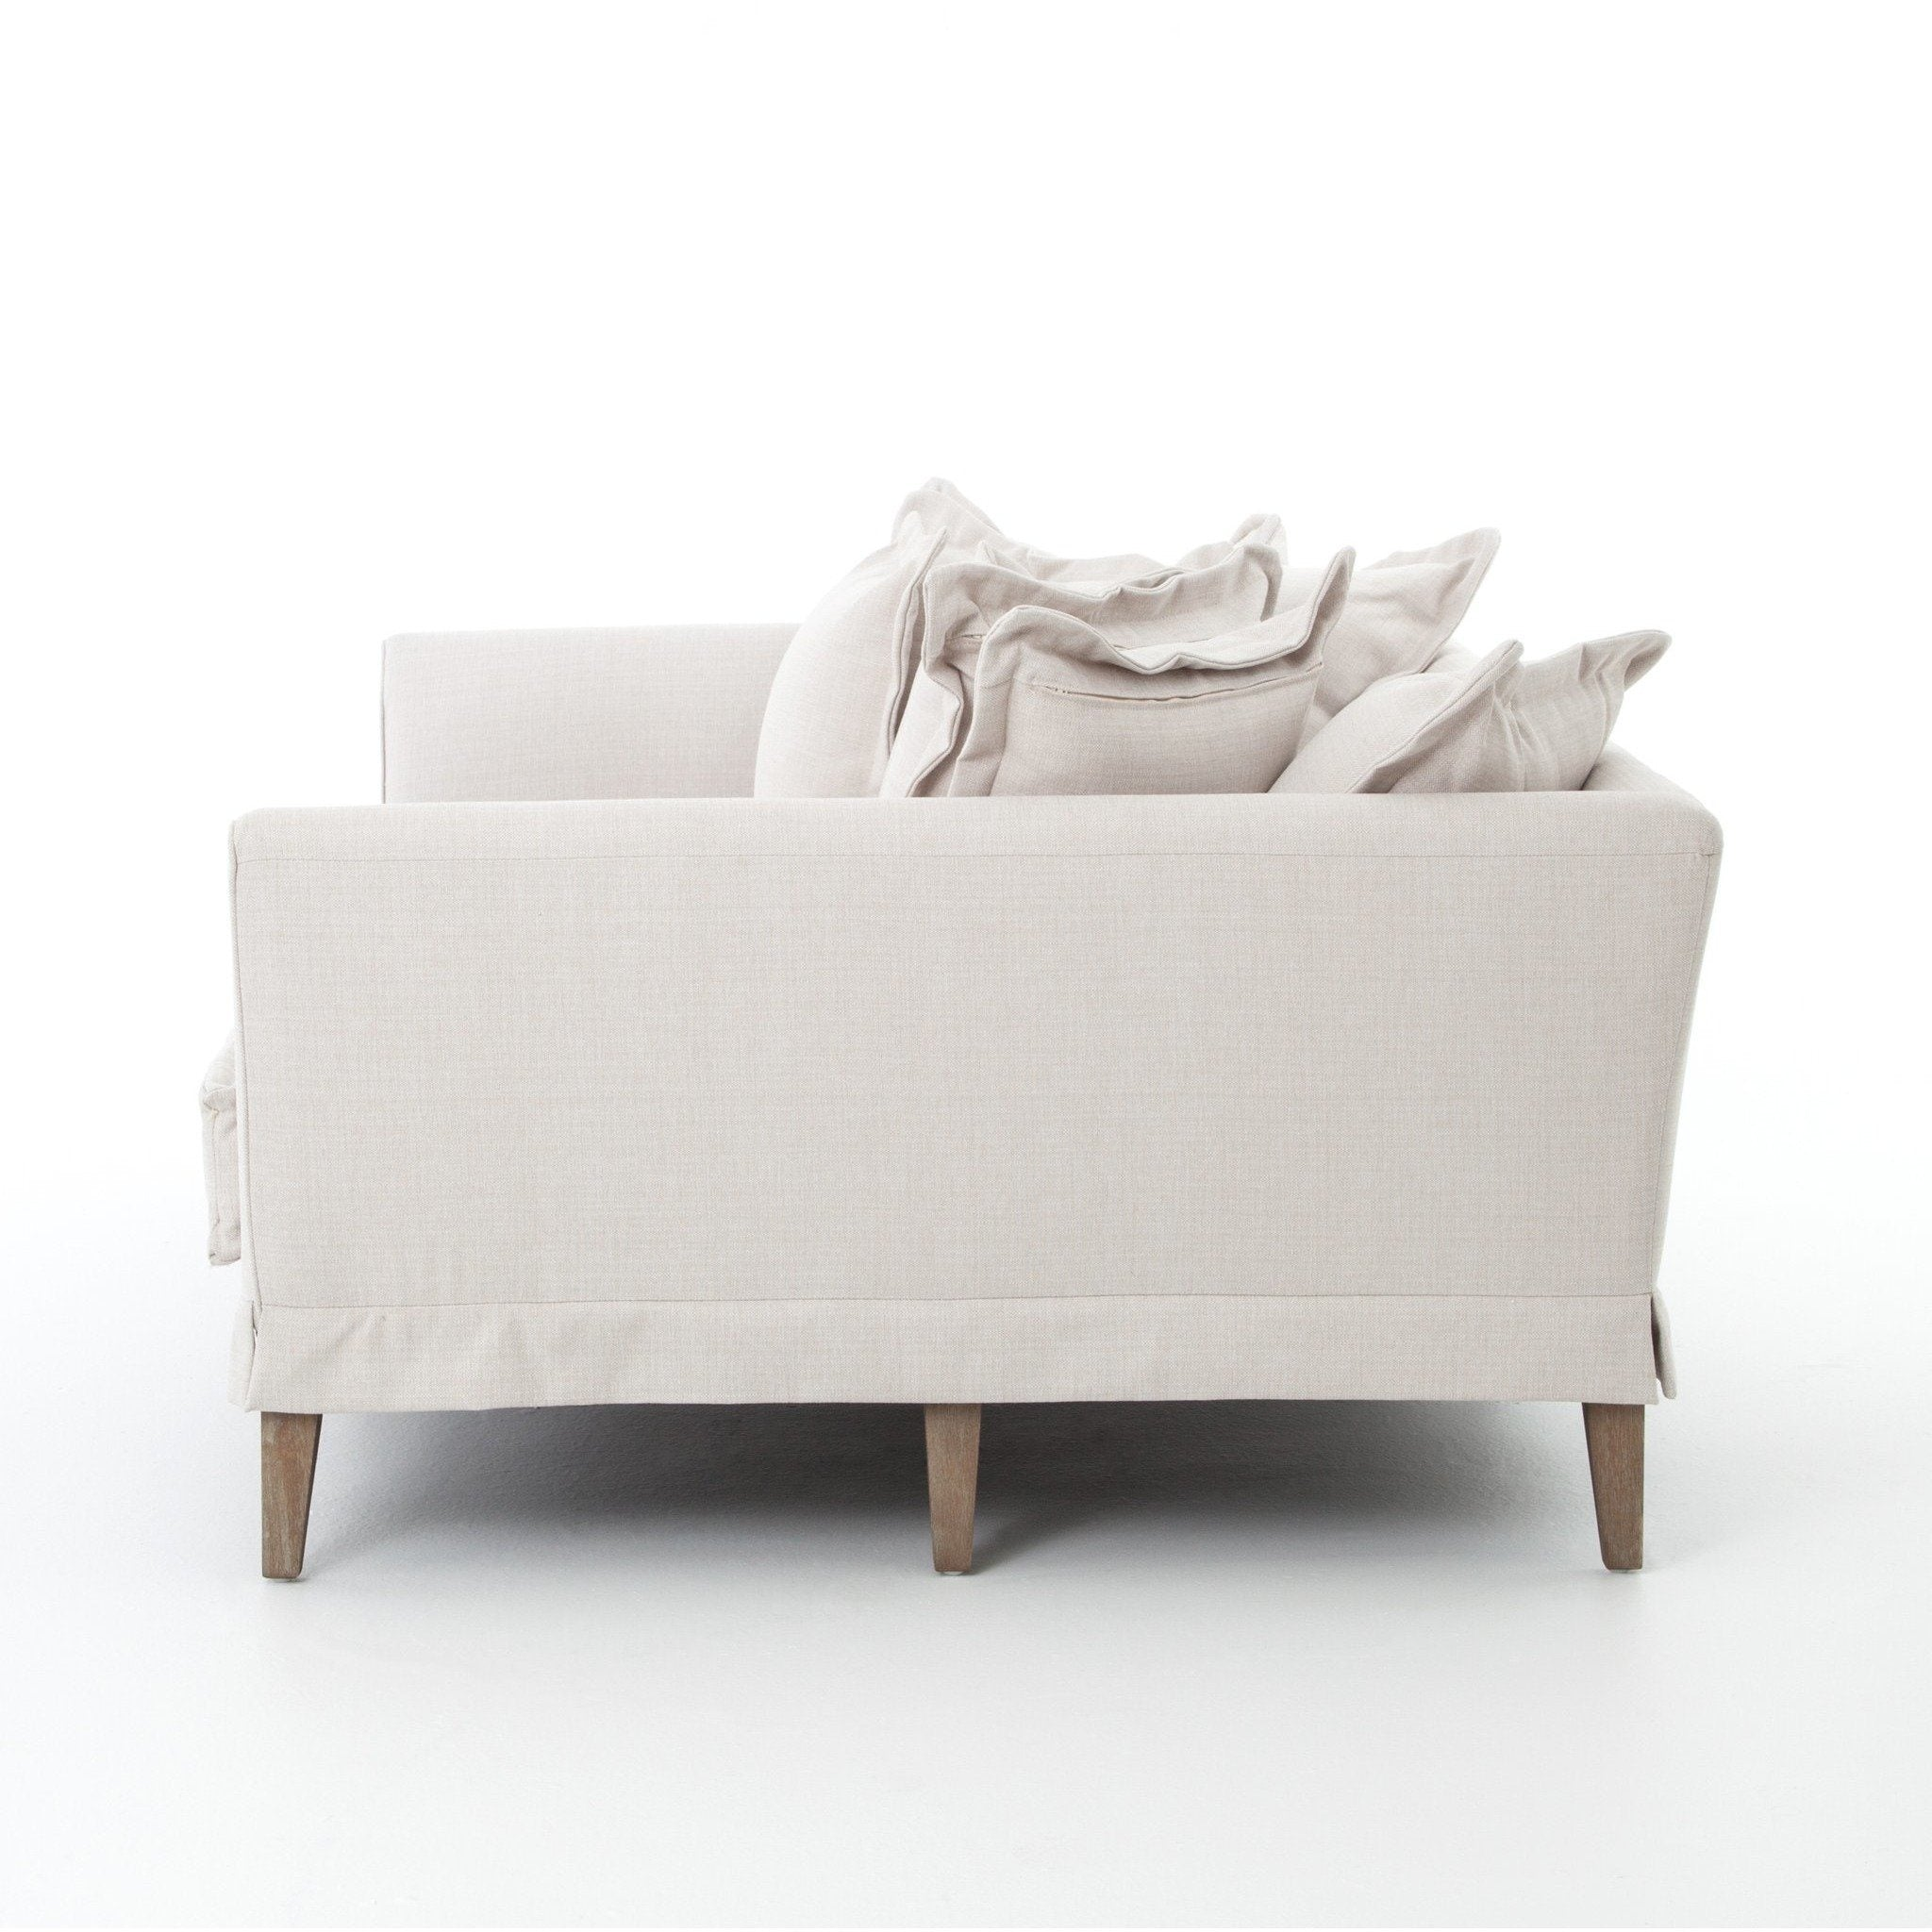 Lovecup Sofa Sand Day Bed - LOVECUP